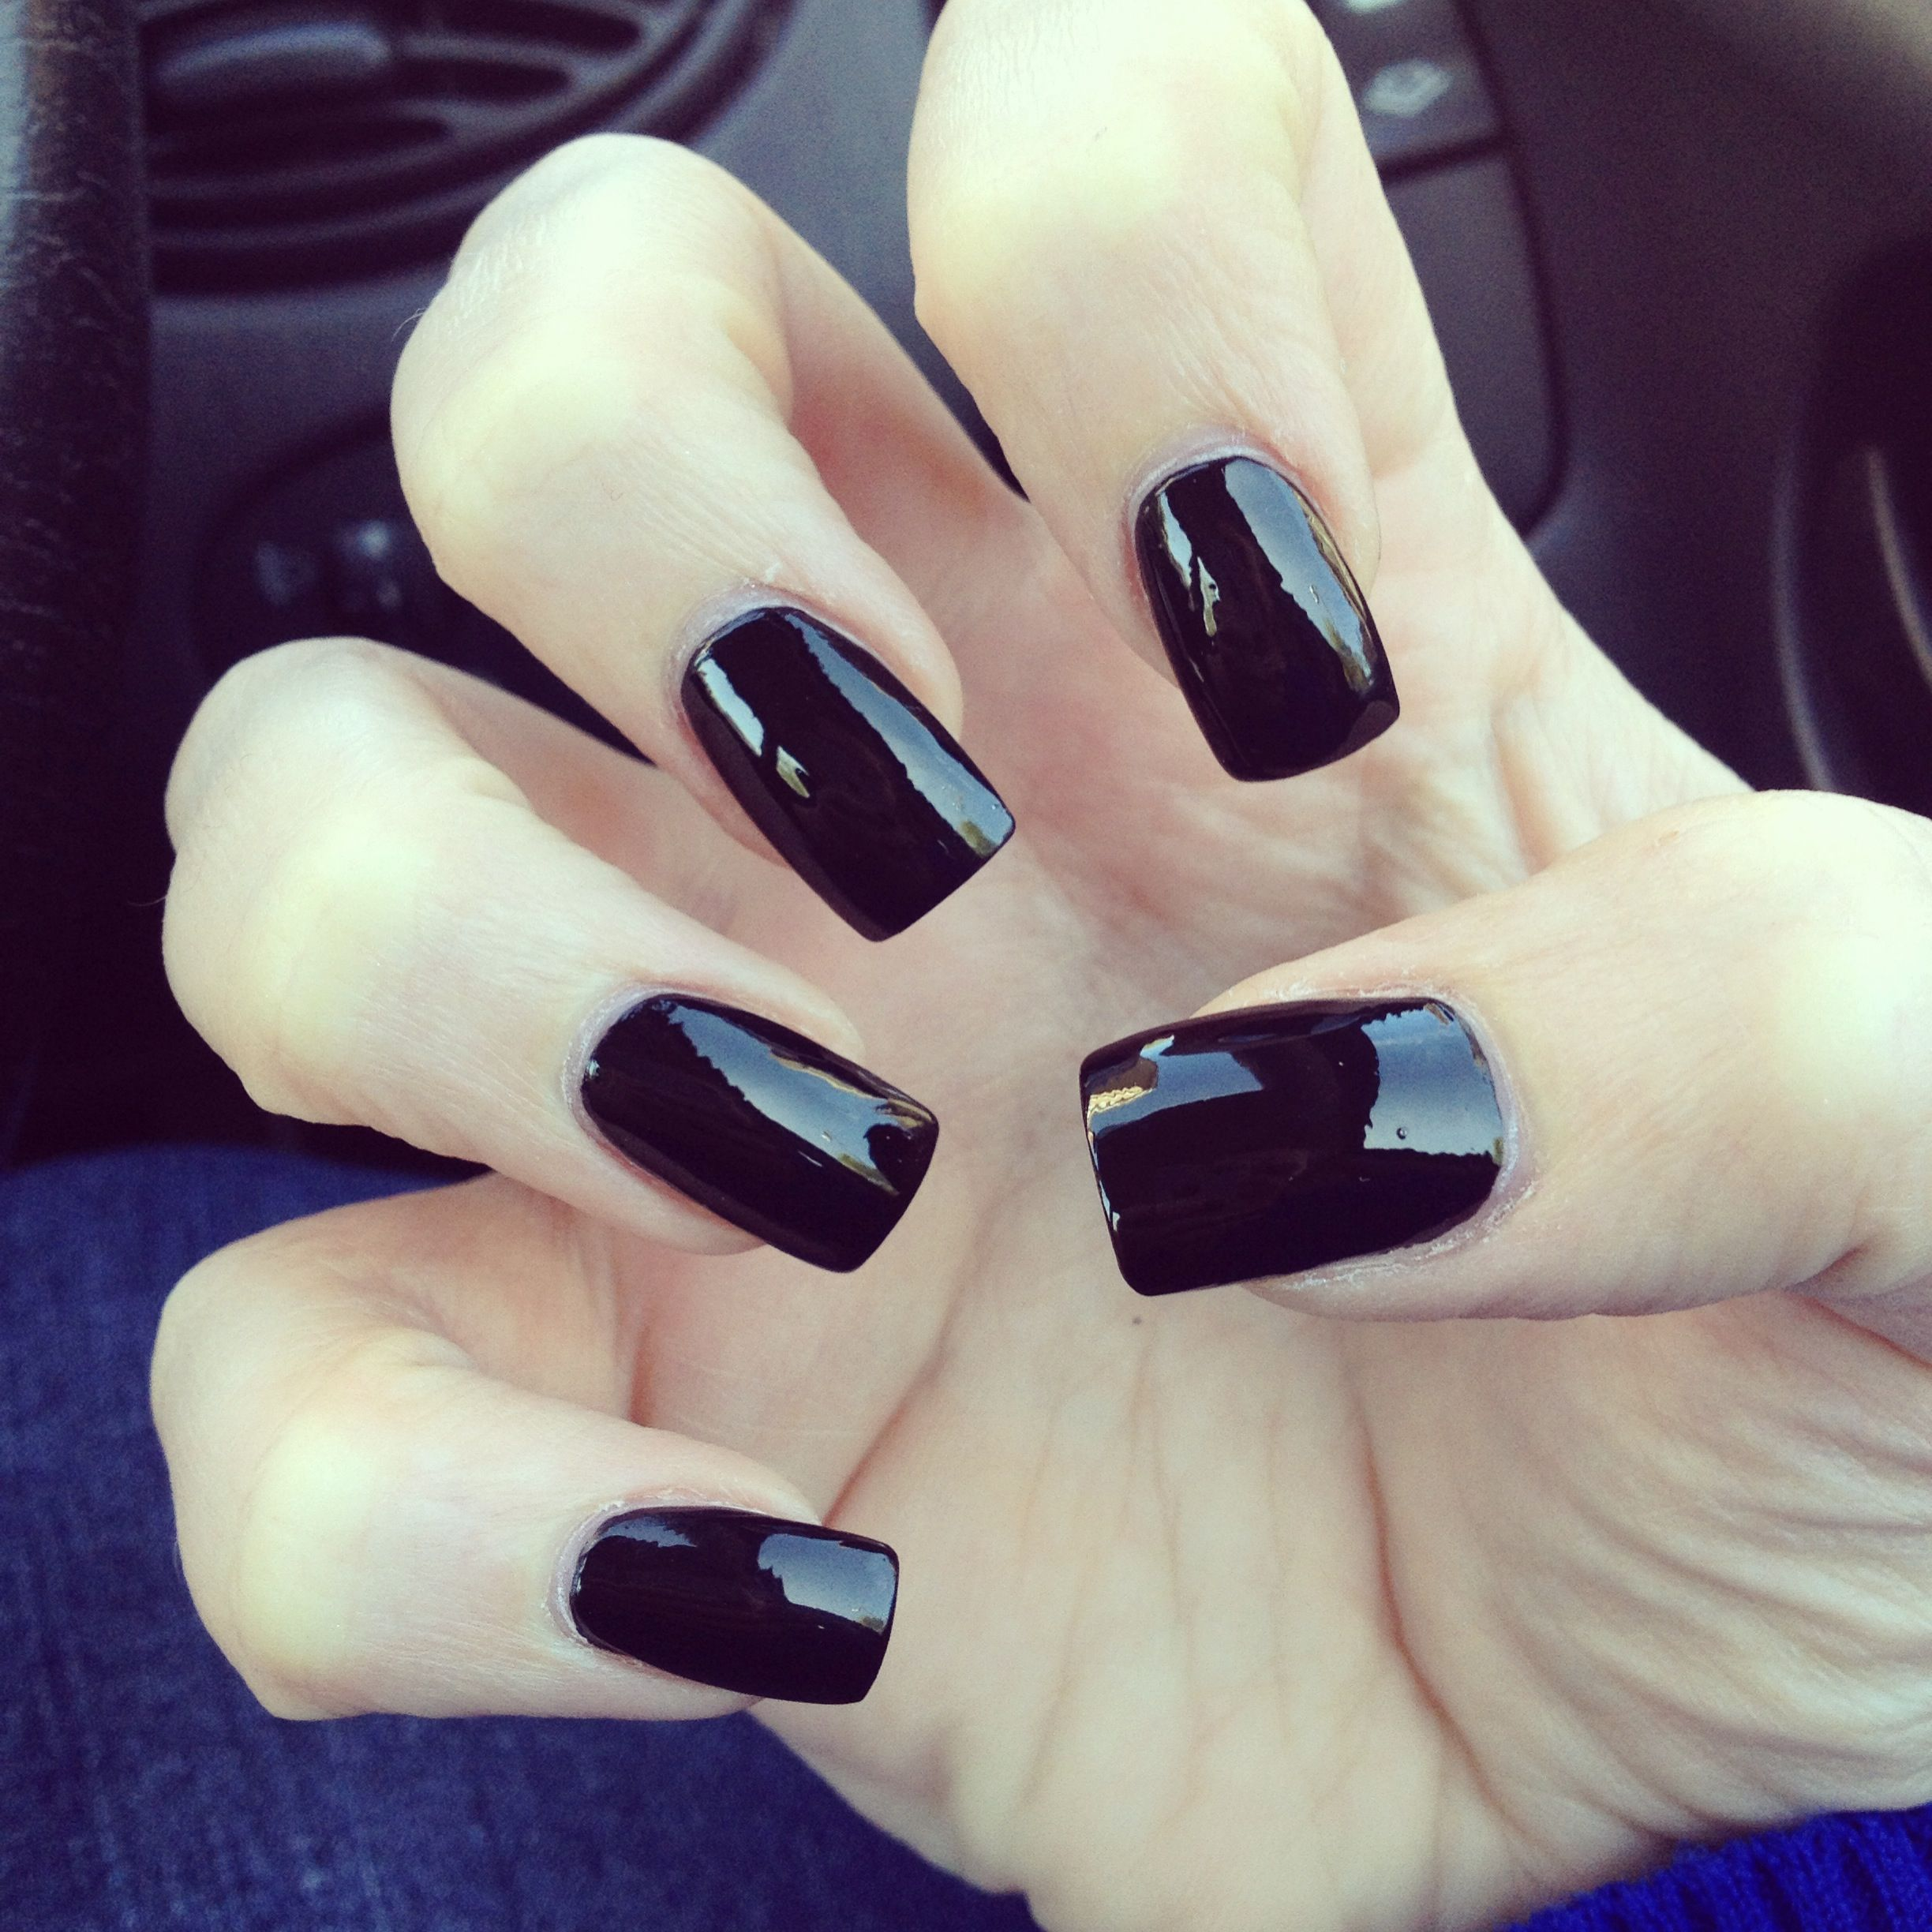 square, black acrylics... simple and chic | Nails ...